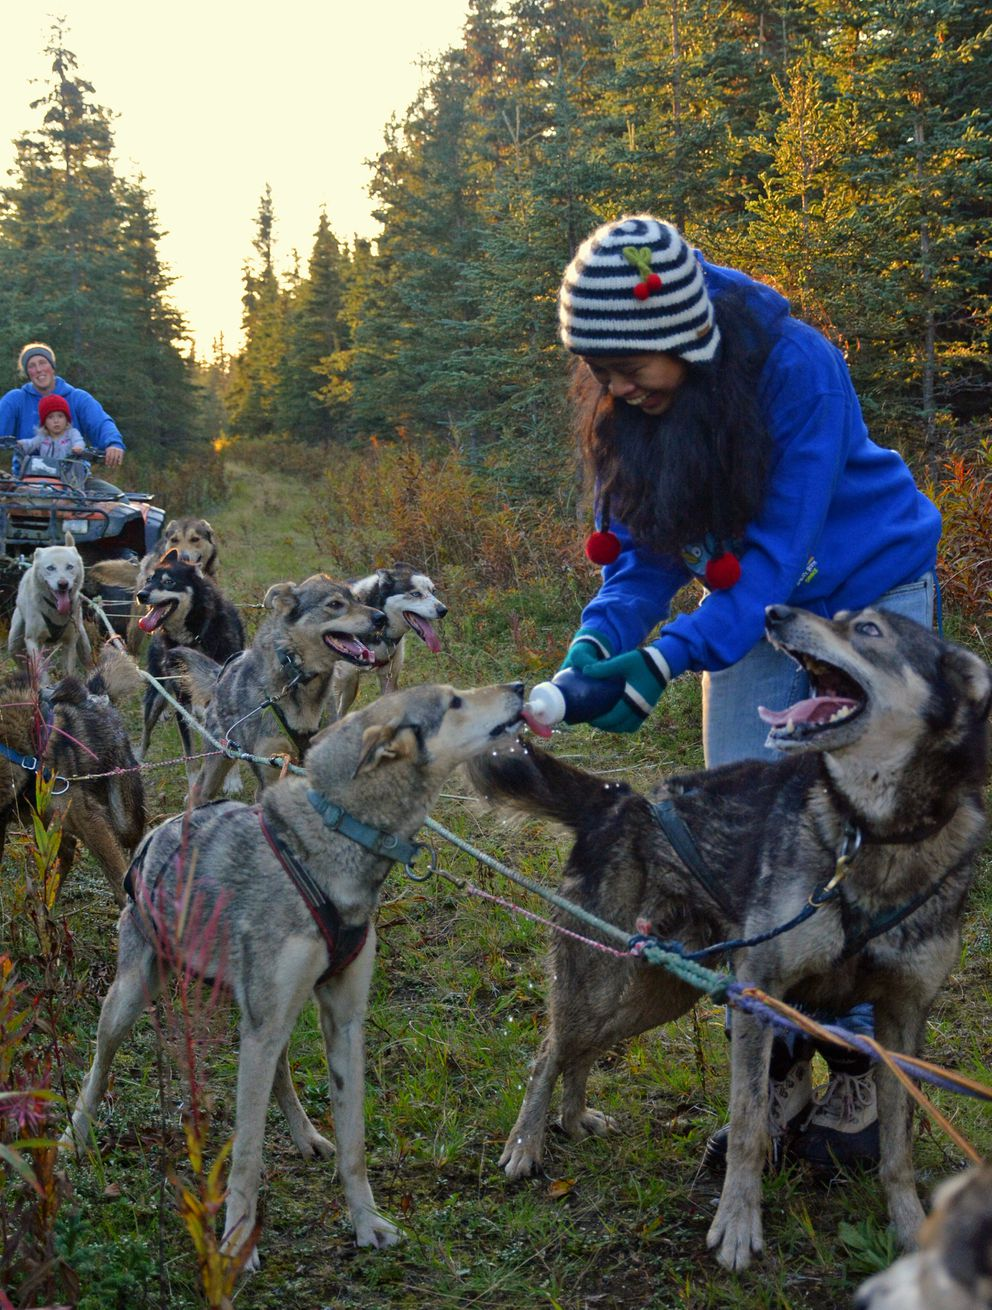 Wearing knit gloves helps prevent Afina from coming in contact with dog saliva – a taboo of her Islamic religion – as sometimes happens when giving the dogs a drink during fall training runs. (Joseph Robertia)